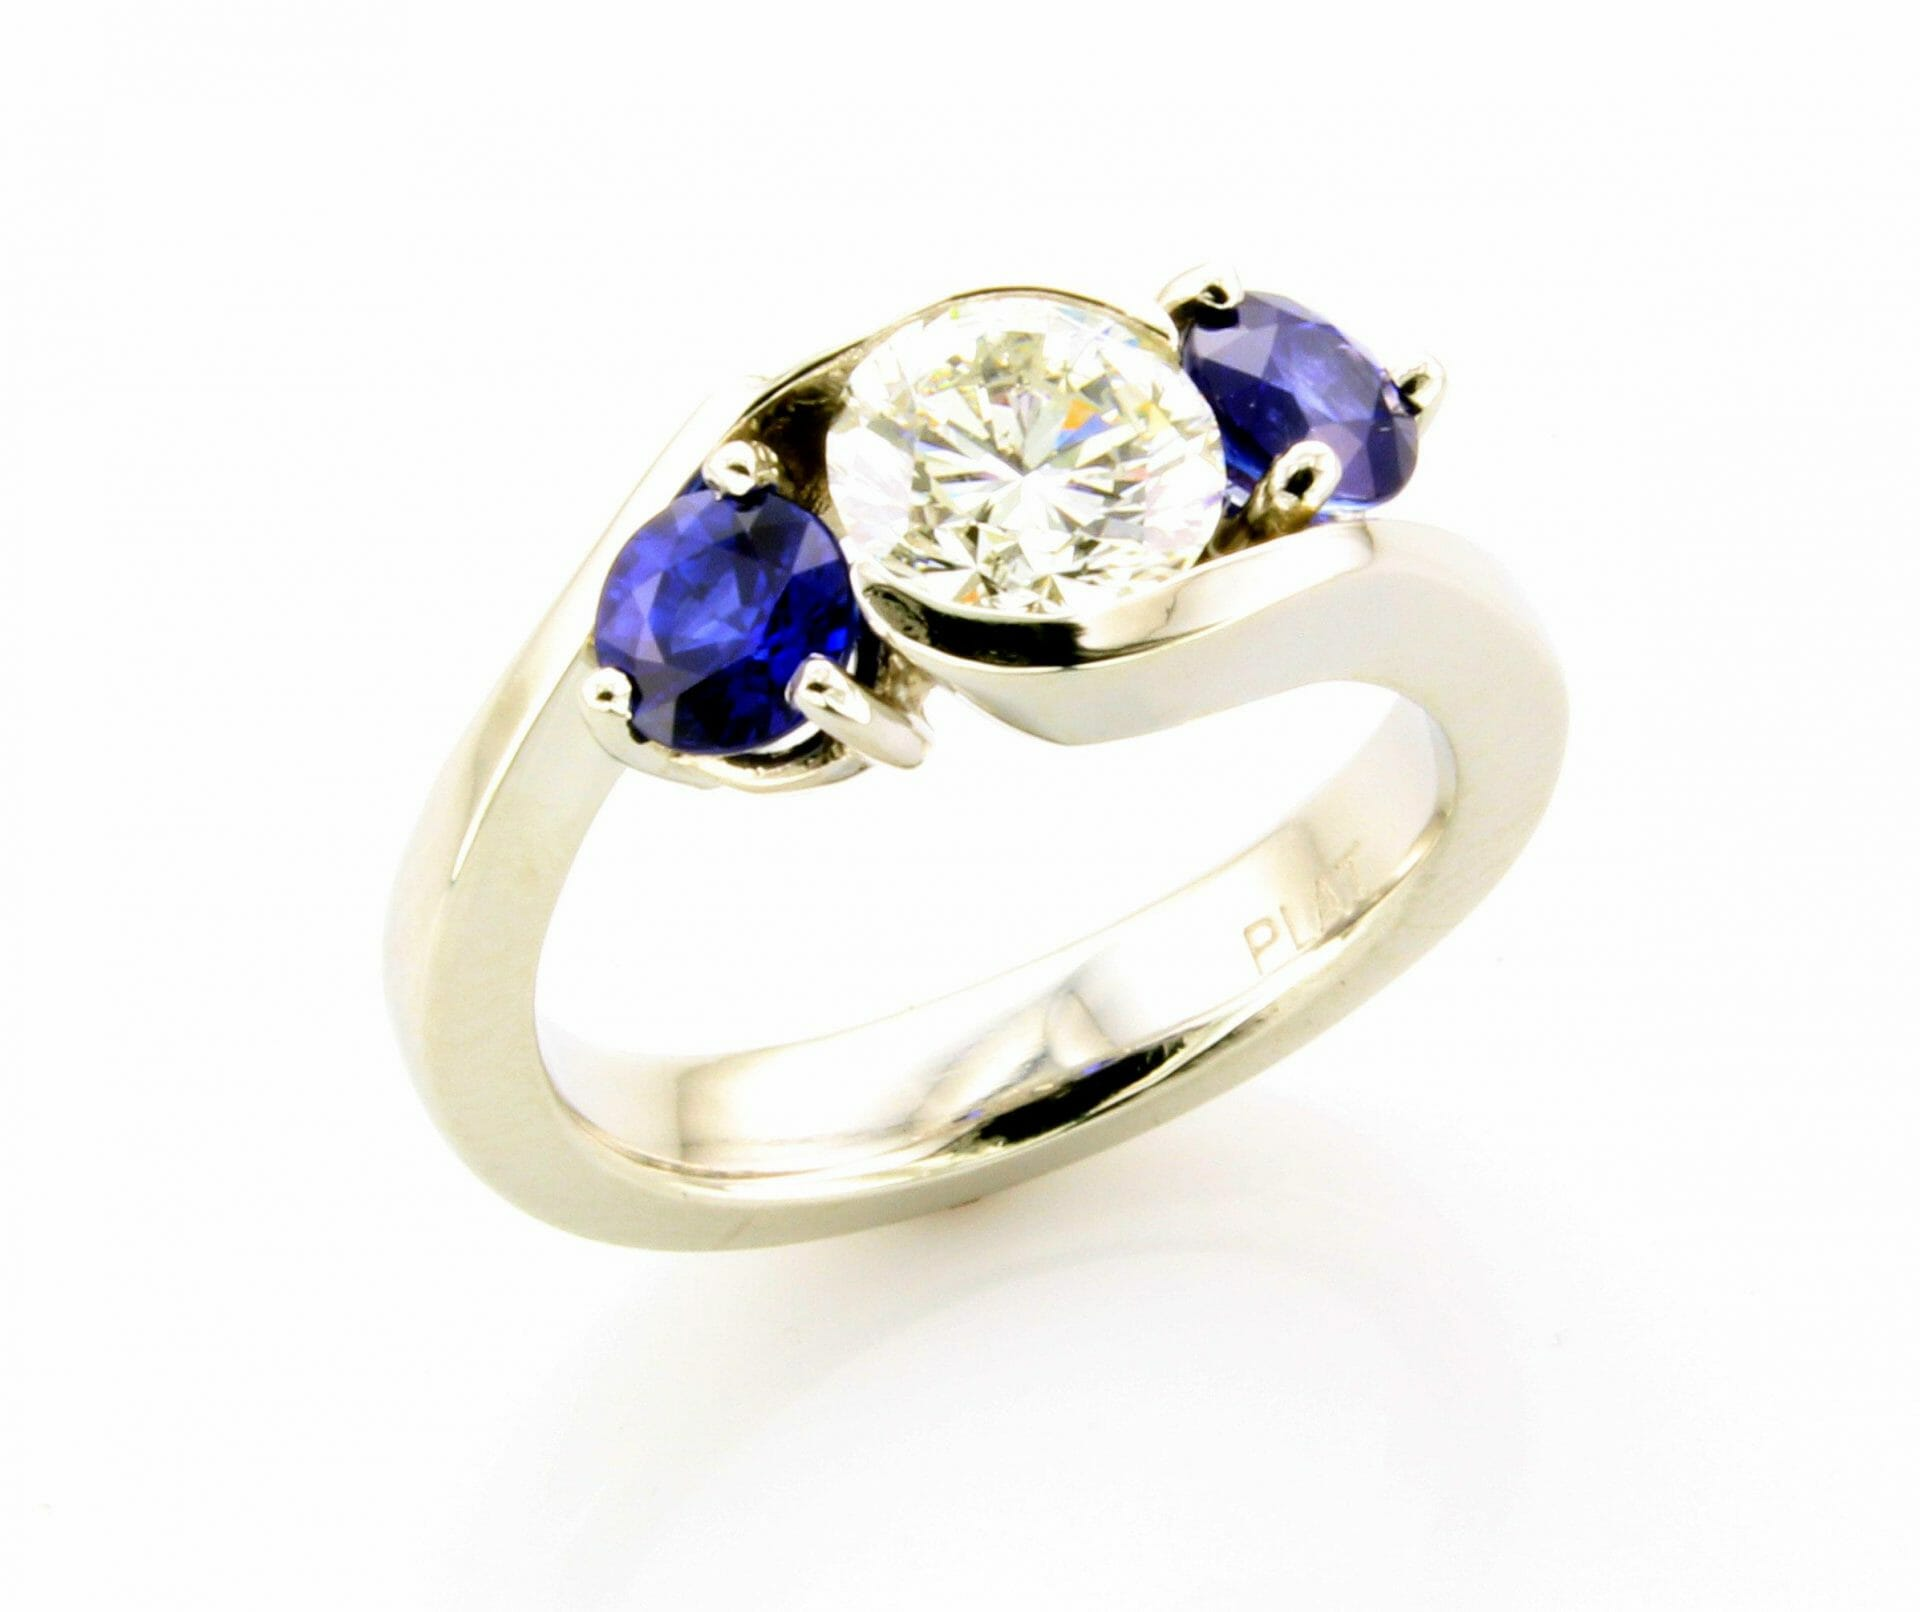 Sapphire and diamond bypass ring